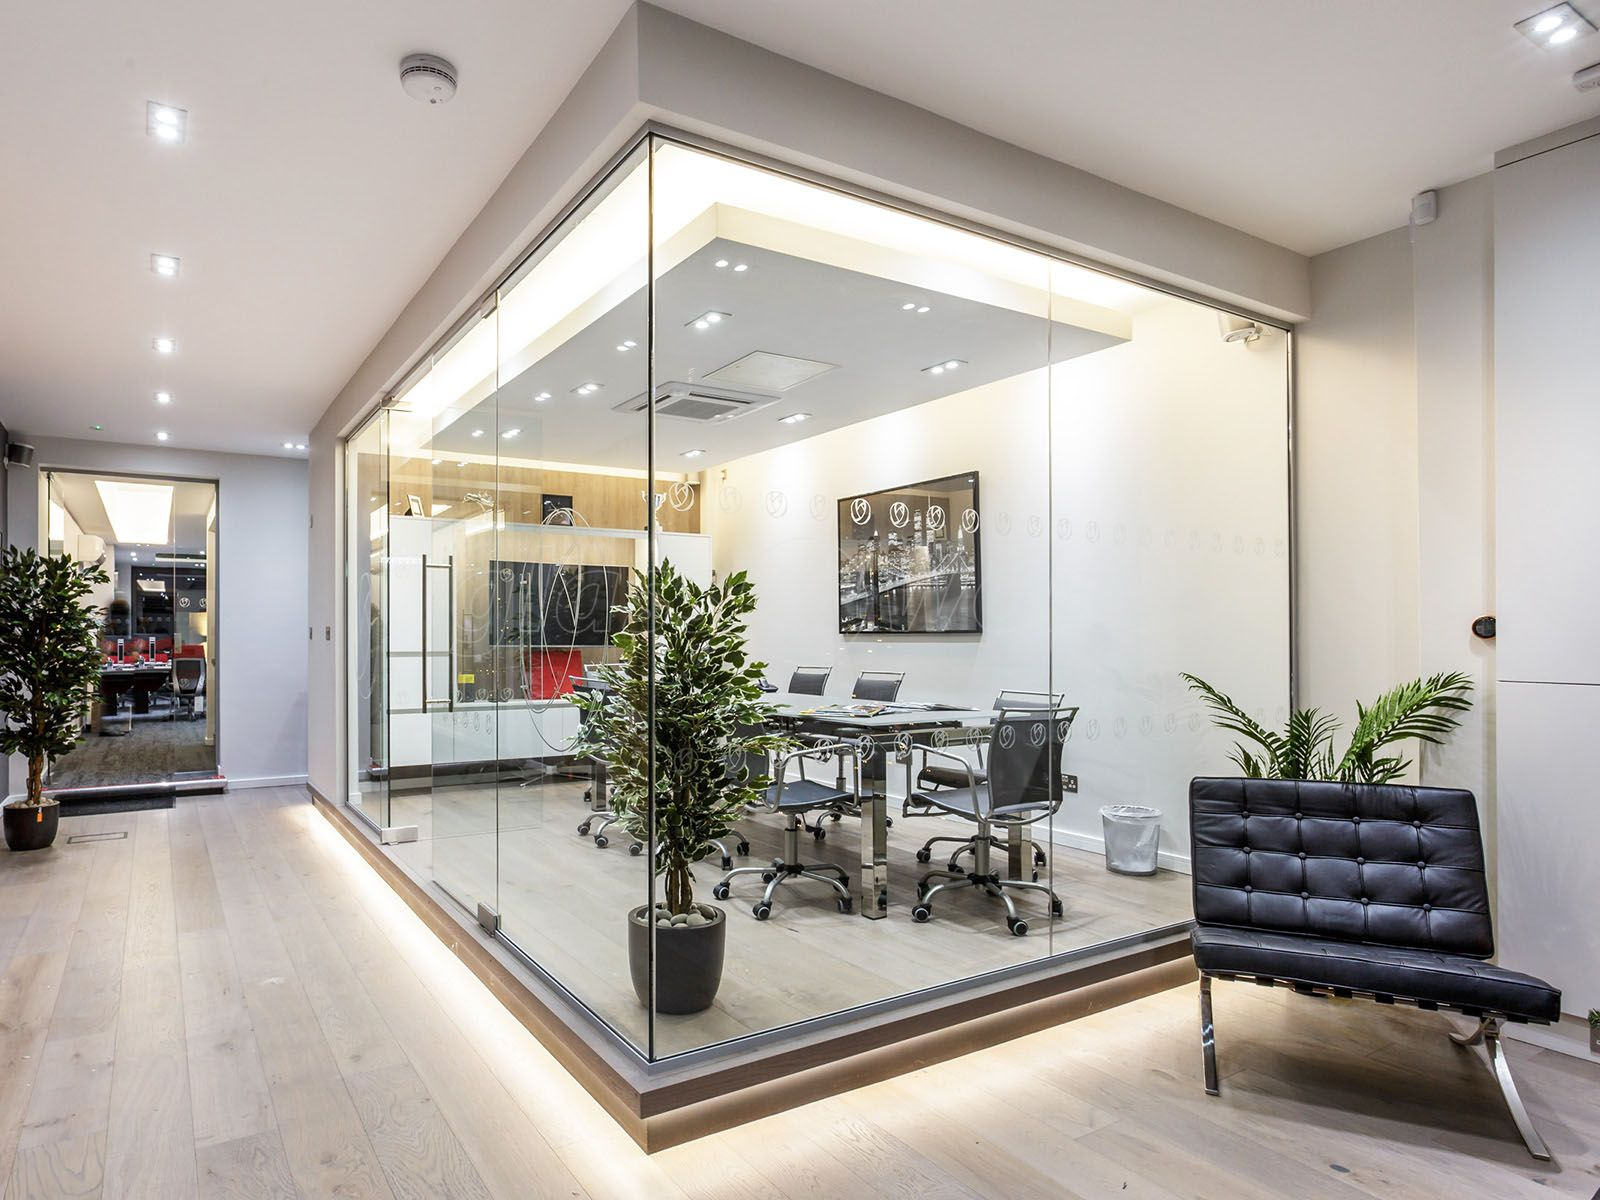 Frameless Gl Walls From 2000 Fully Installed A Modern Office Corner Room Built Using The At Work Parioning System